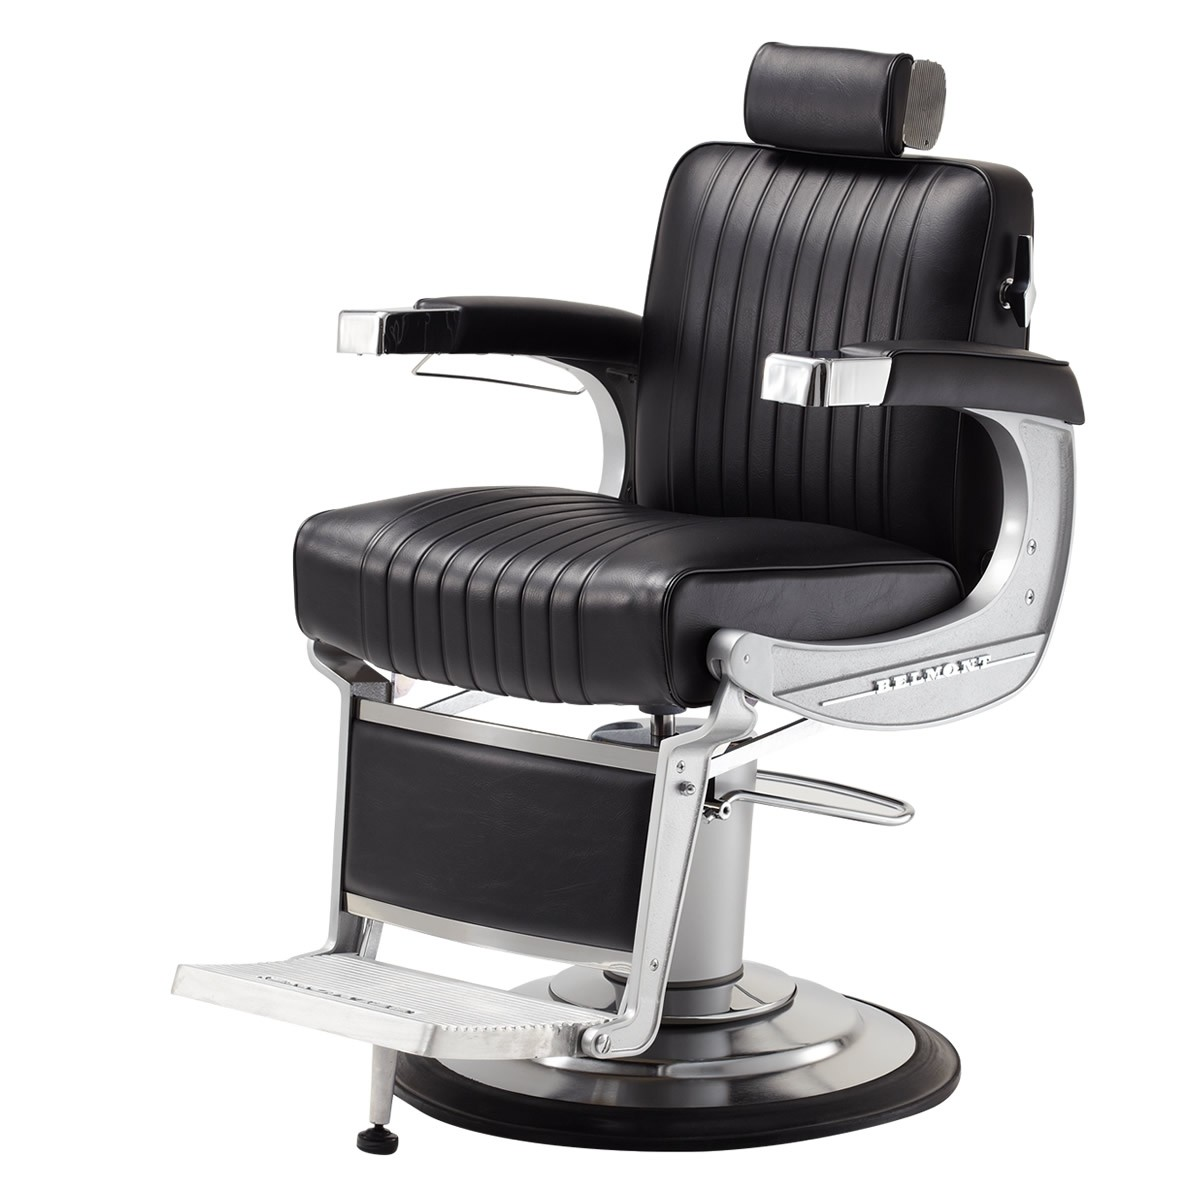 "TAKARA BELMONT B-225 ""ELEGANCE"" Barber Chair - TAKARA Barber Chairs, BELMONT Barber Chairs"